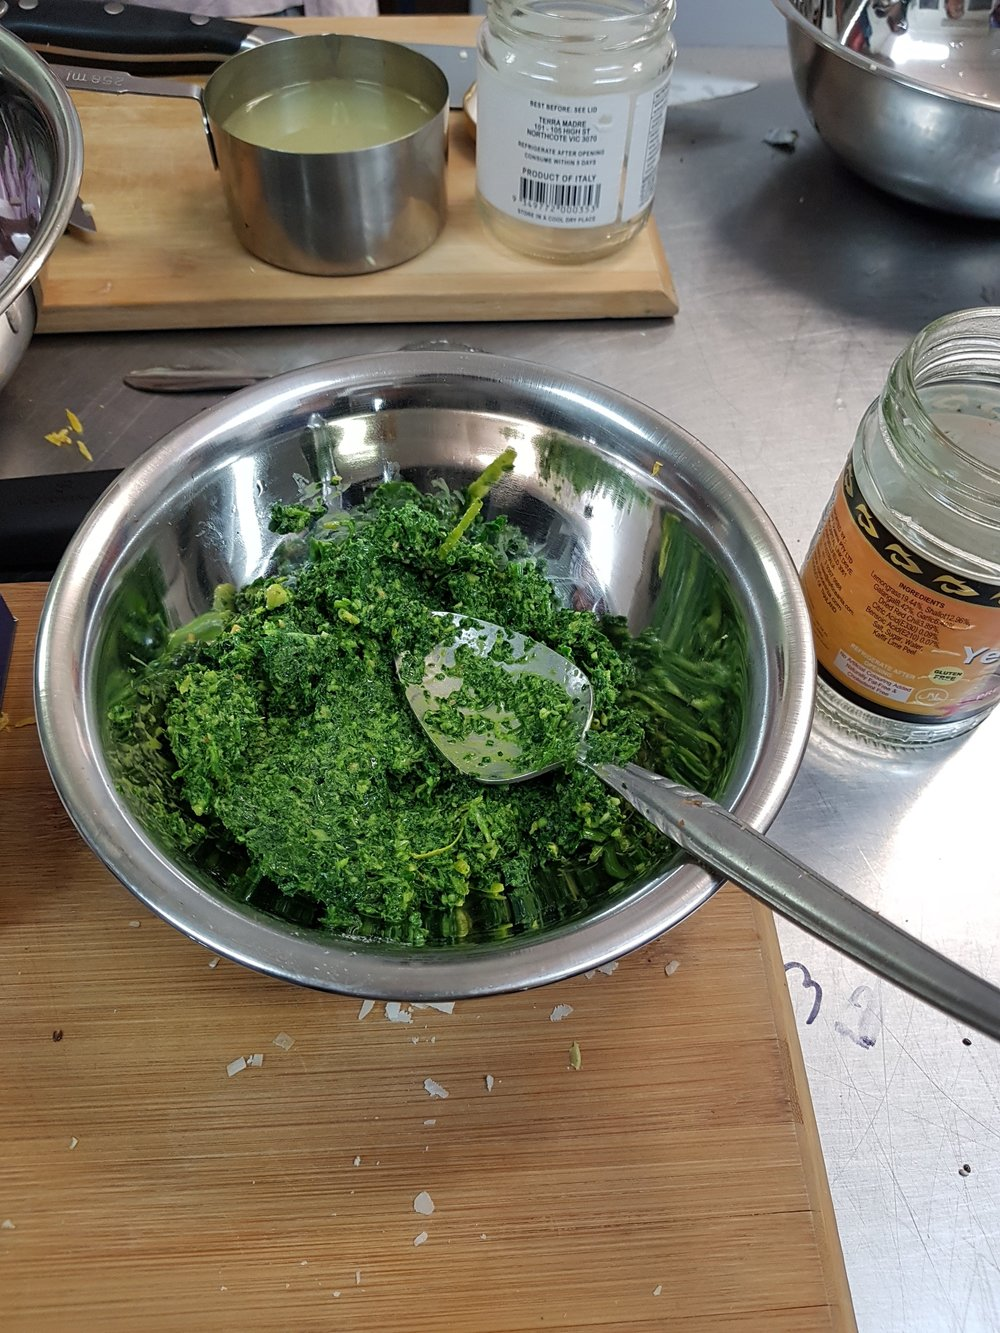 A mixing bowl filled with the finished kale pesto.